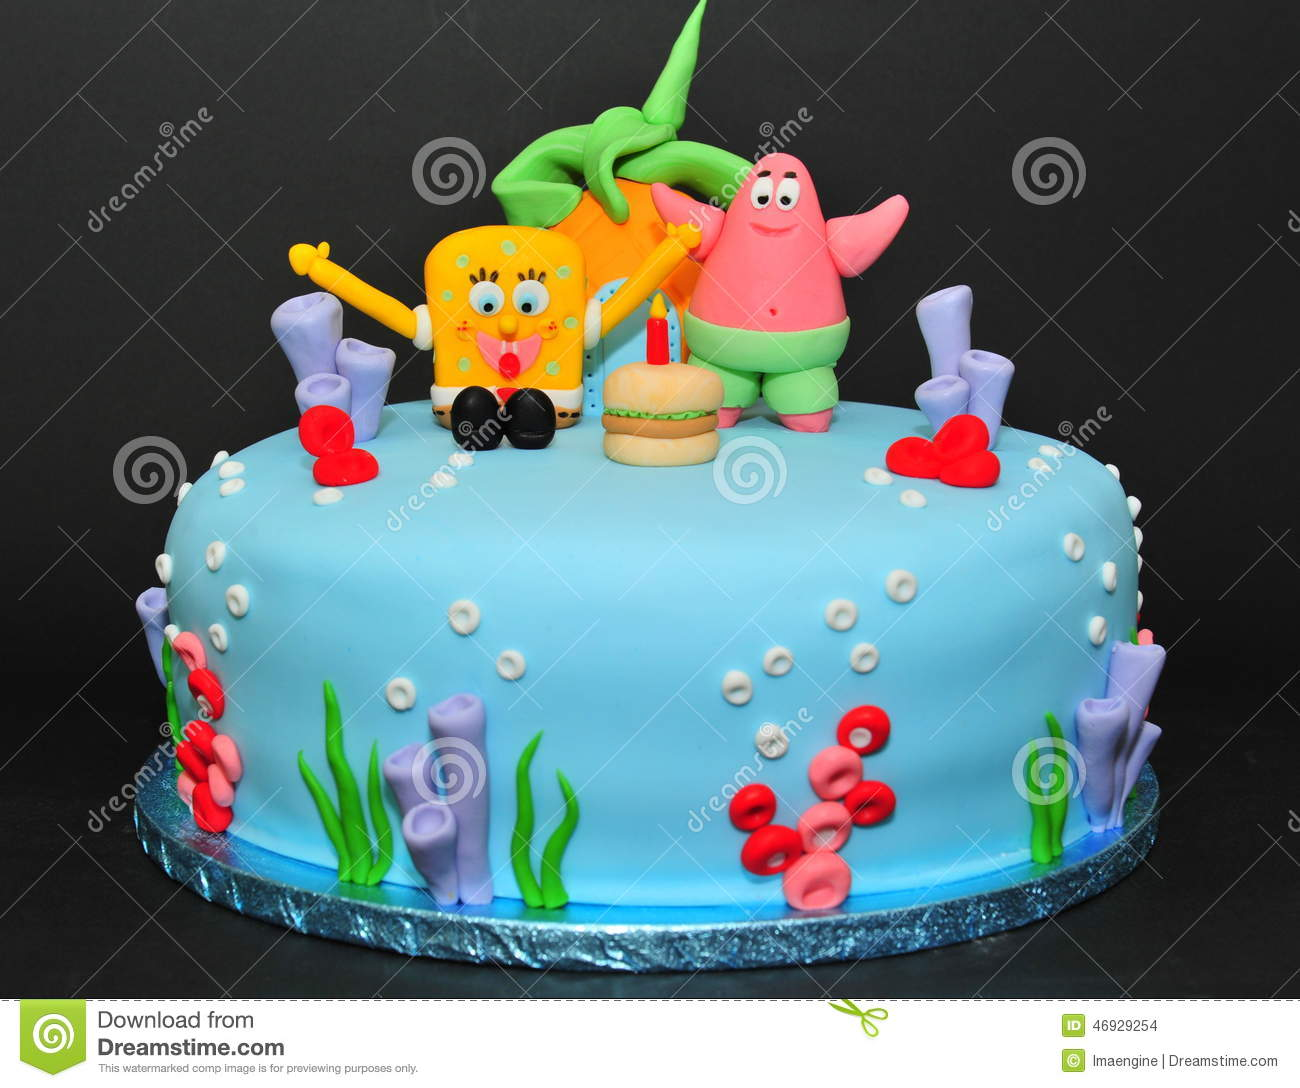 Sponge Bob Cake Editorial Stock Image Image Of Decorative